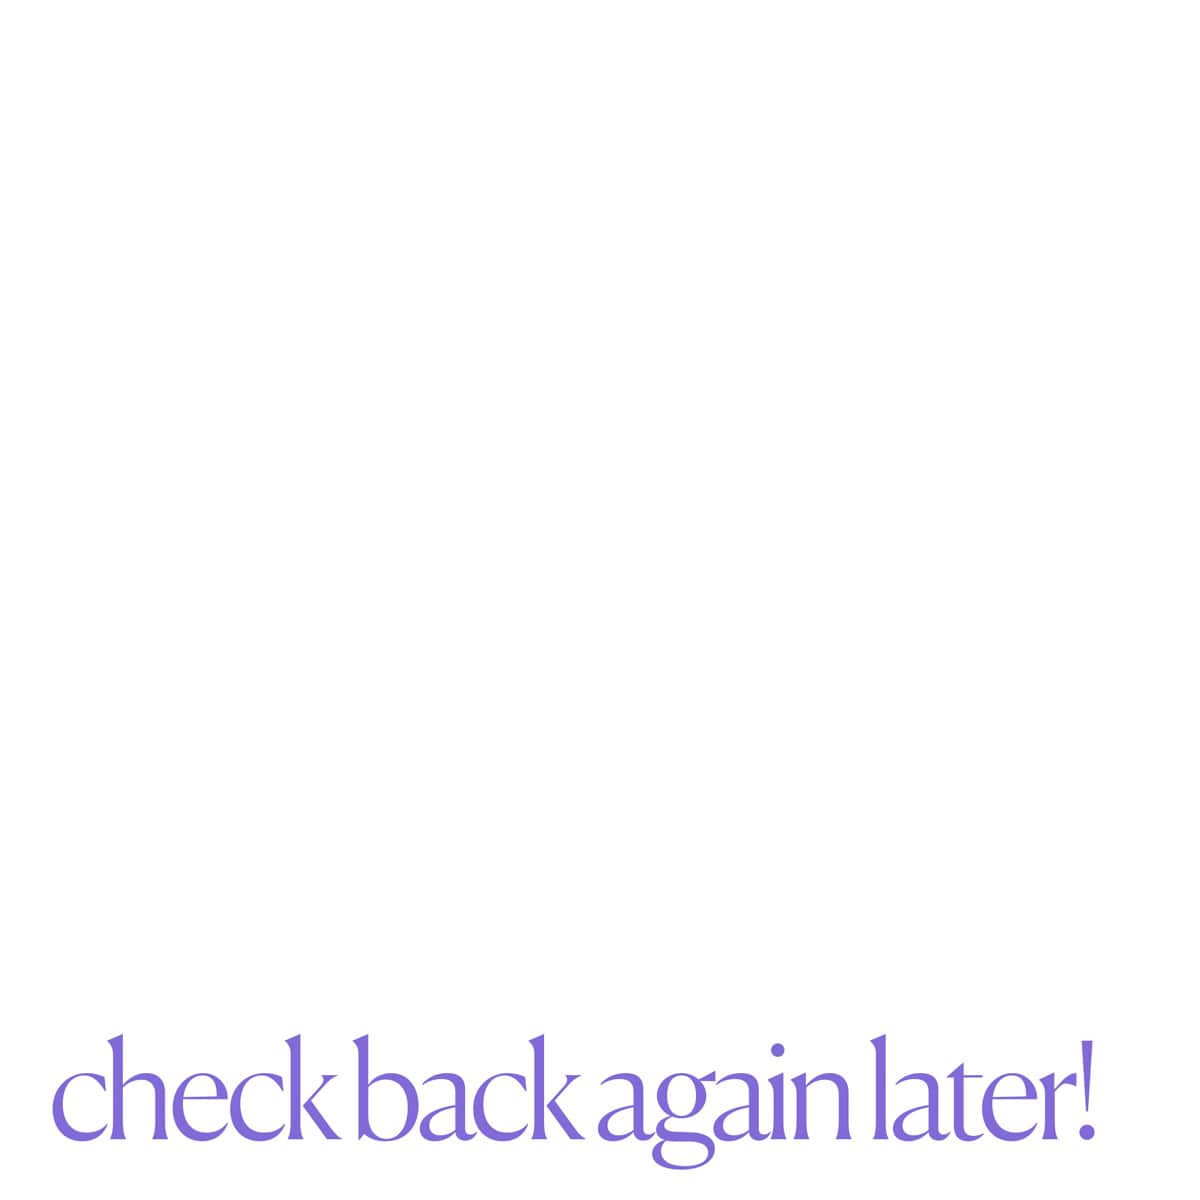 Check back again later!